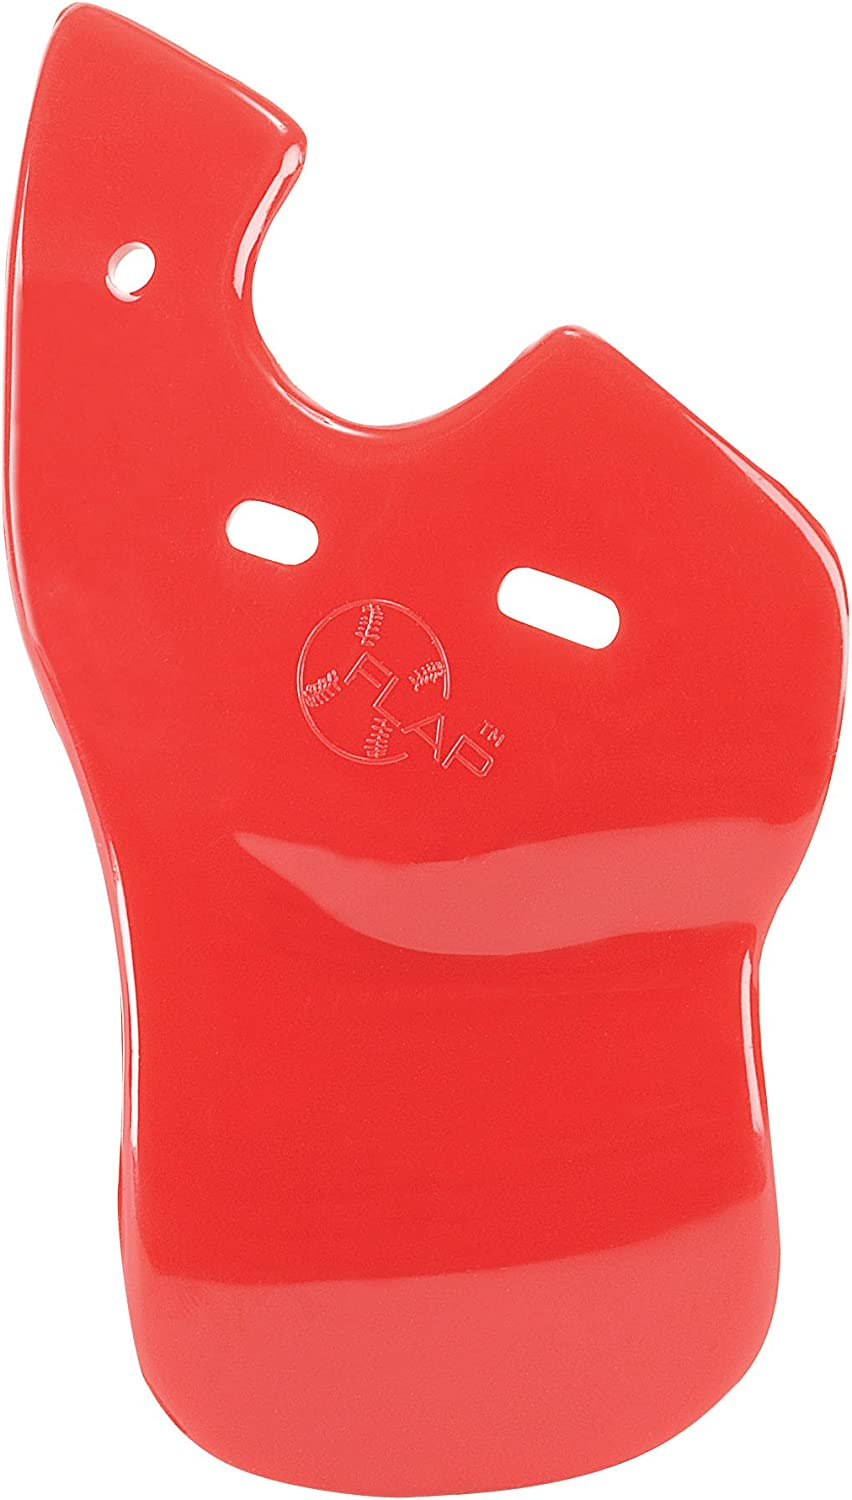 Baseball C-Flap Batter's Helmet Face Predection Guard Attachment (5 colors for Left & Right Handed Hitters) (Red, Left Handed Hitter)